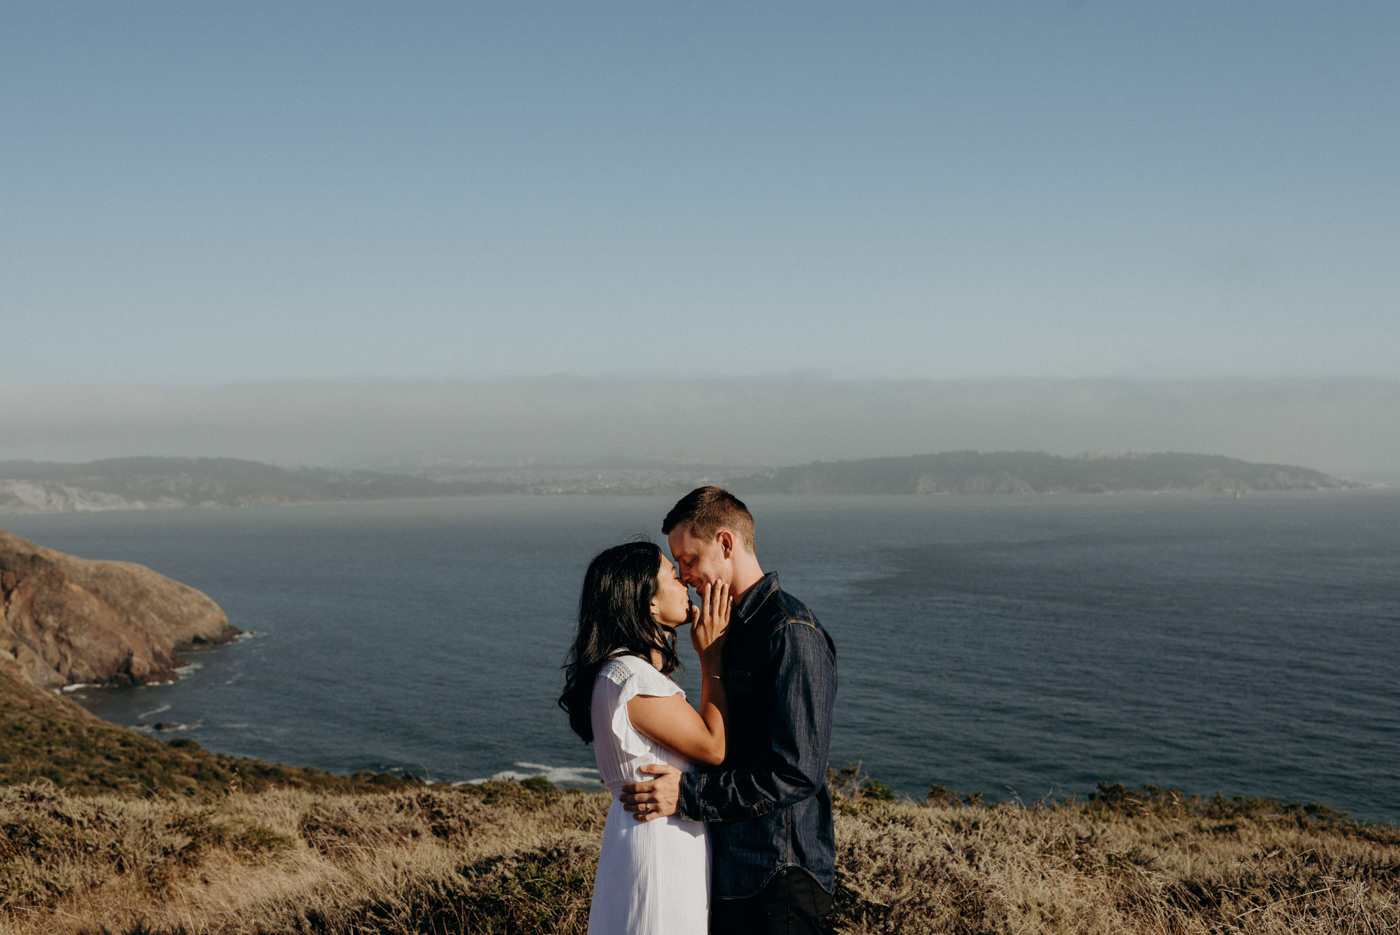 Engagement shoot at Marin Headlands at sunset